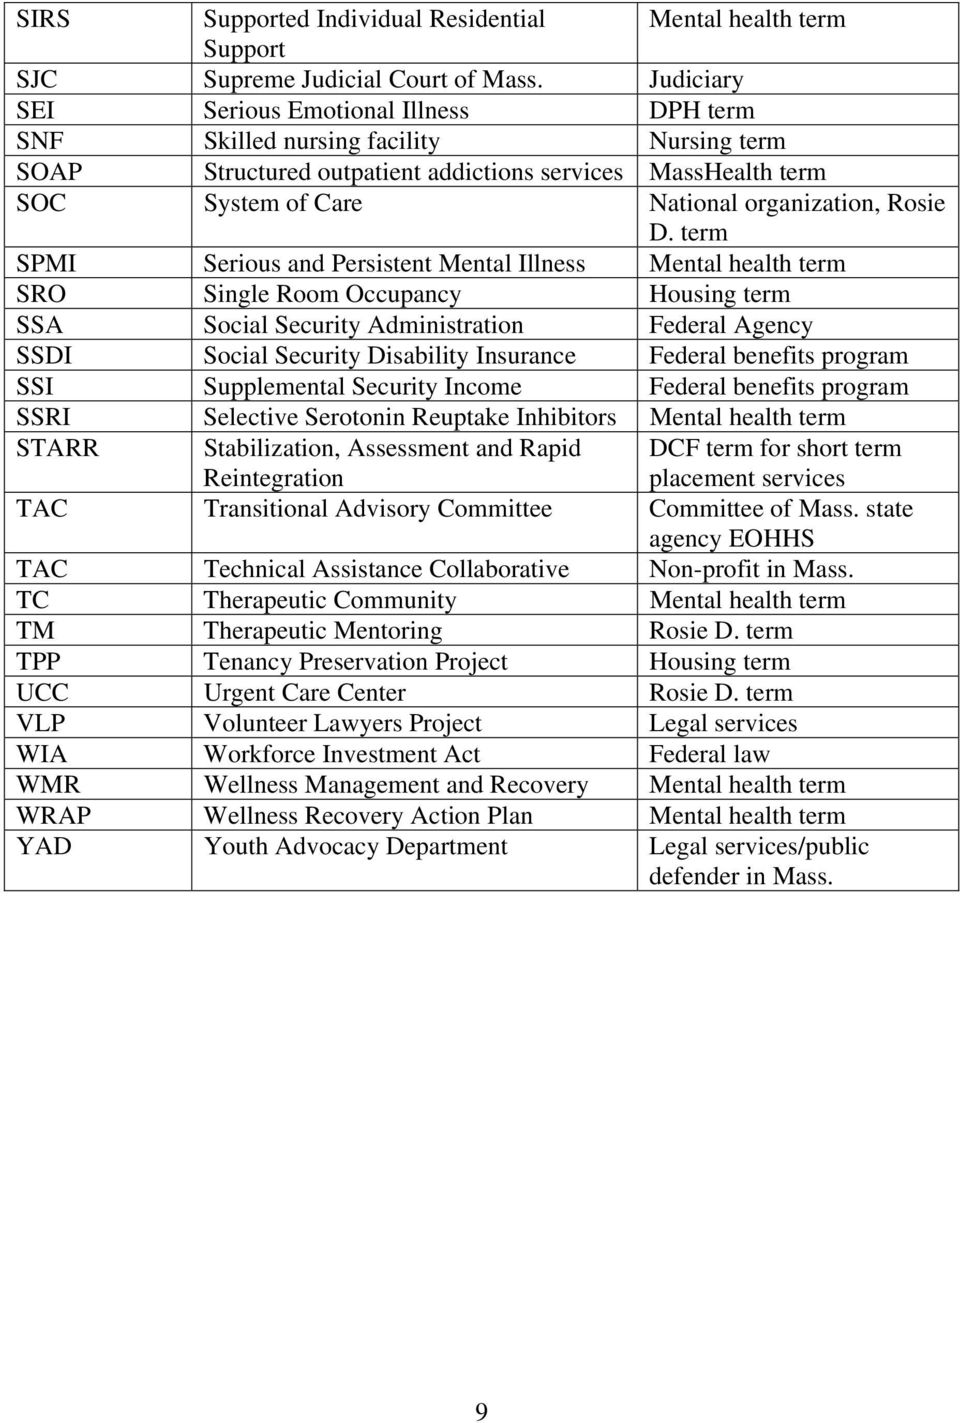 What Does That Stand For Acronyms Used In Mental Health Advocacy In